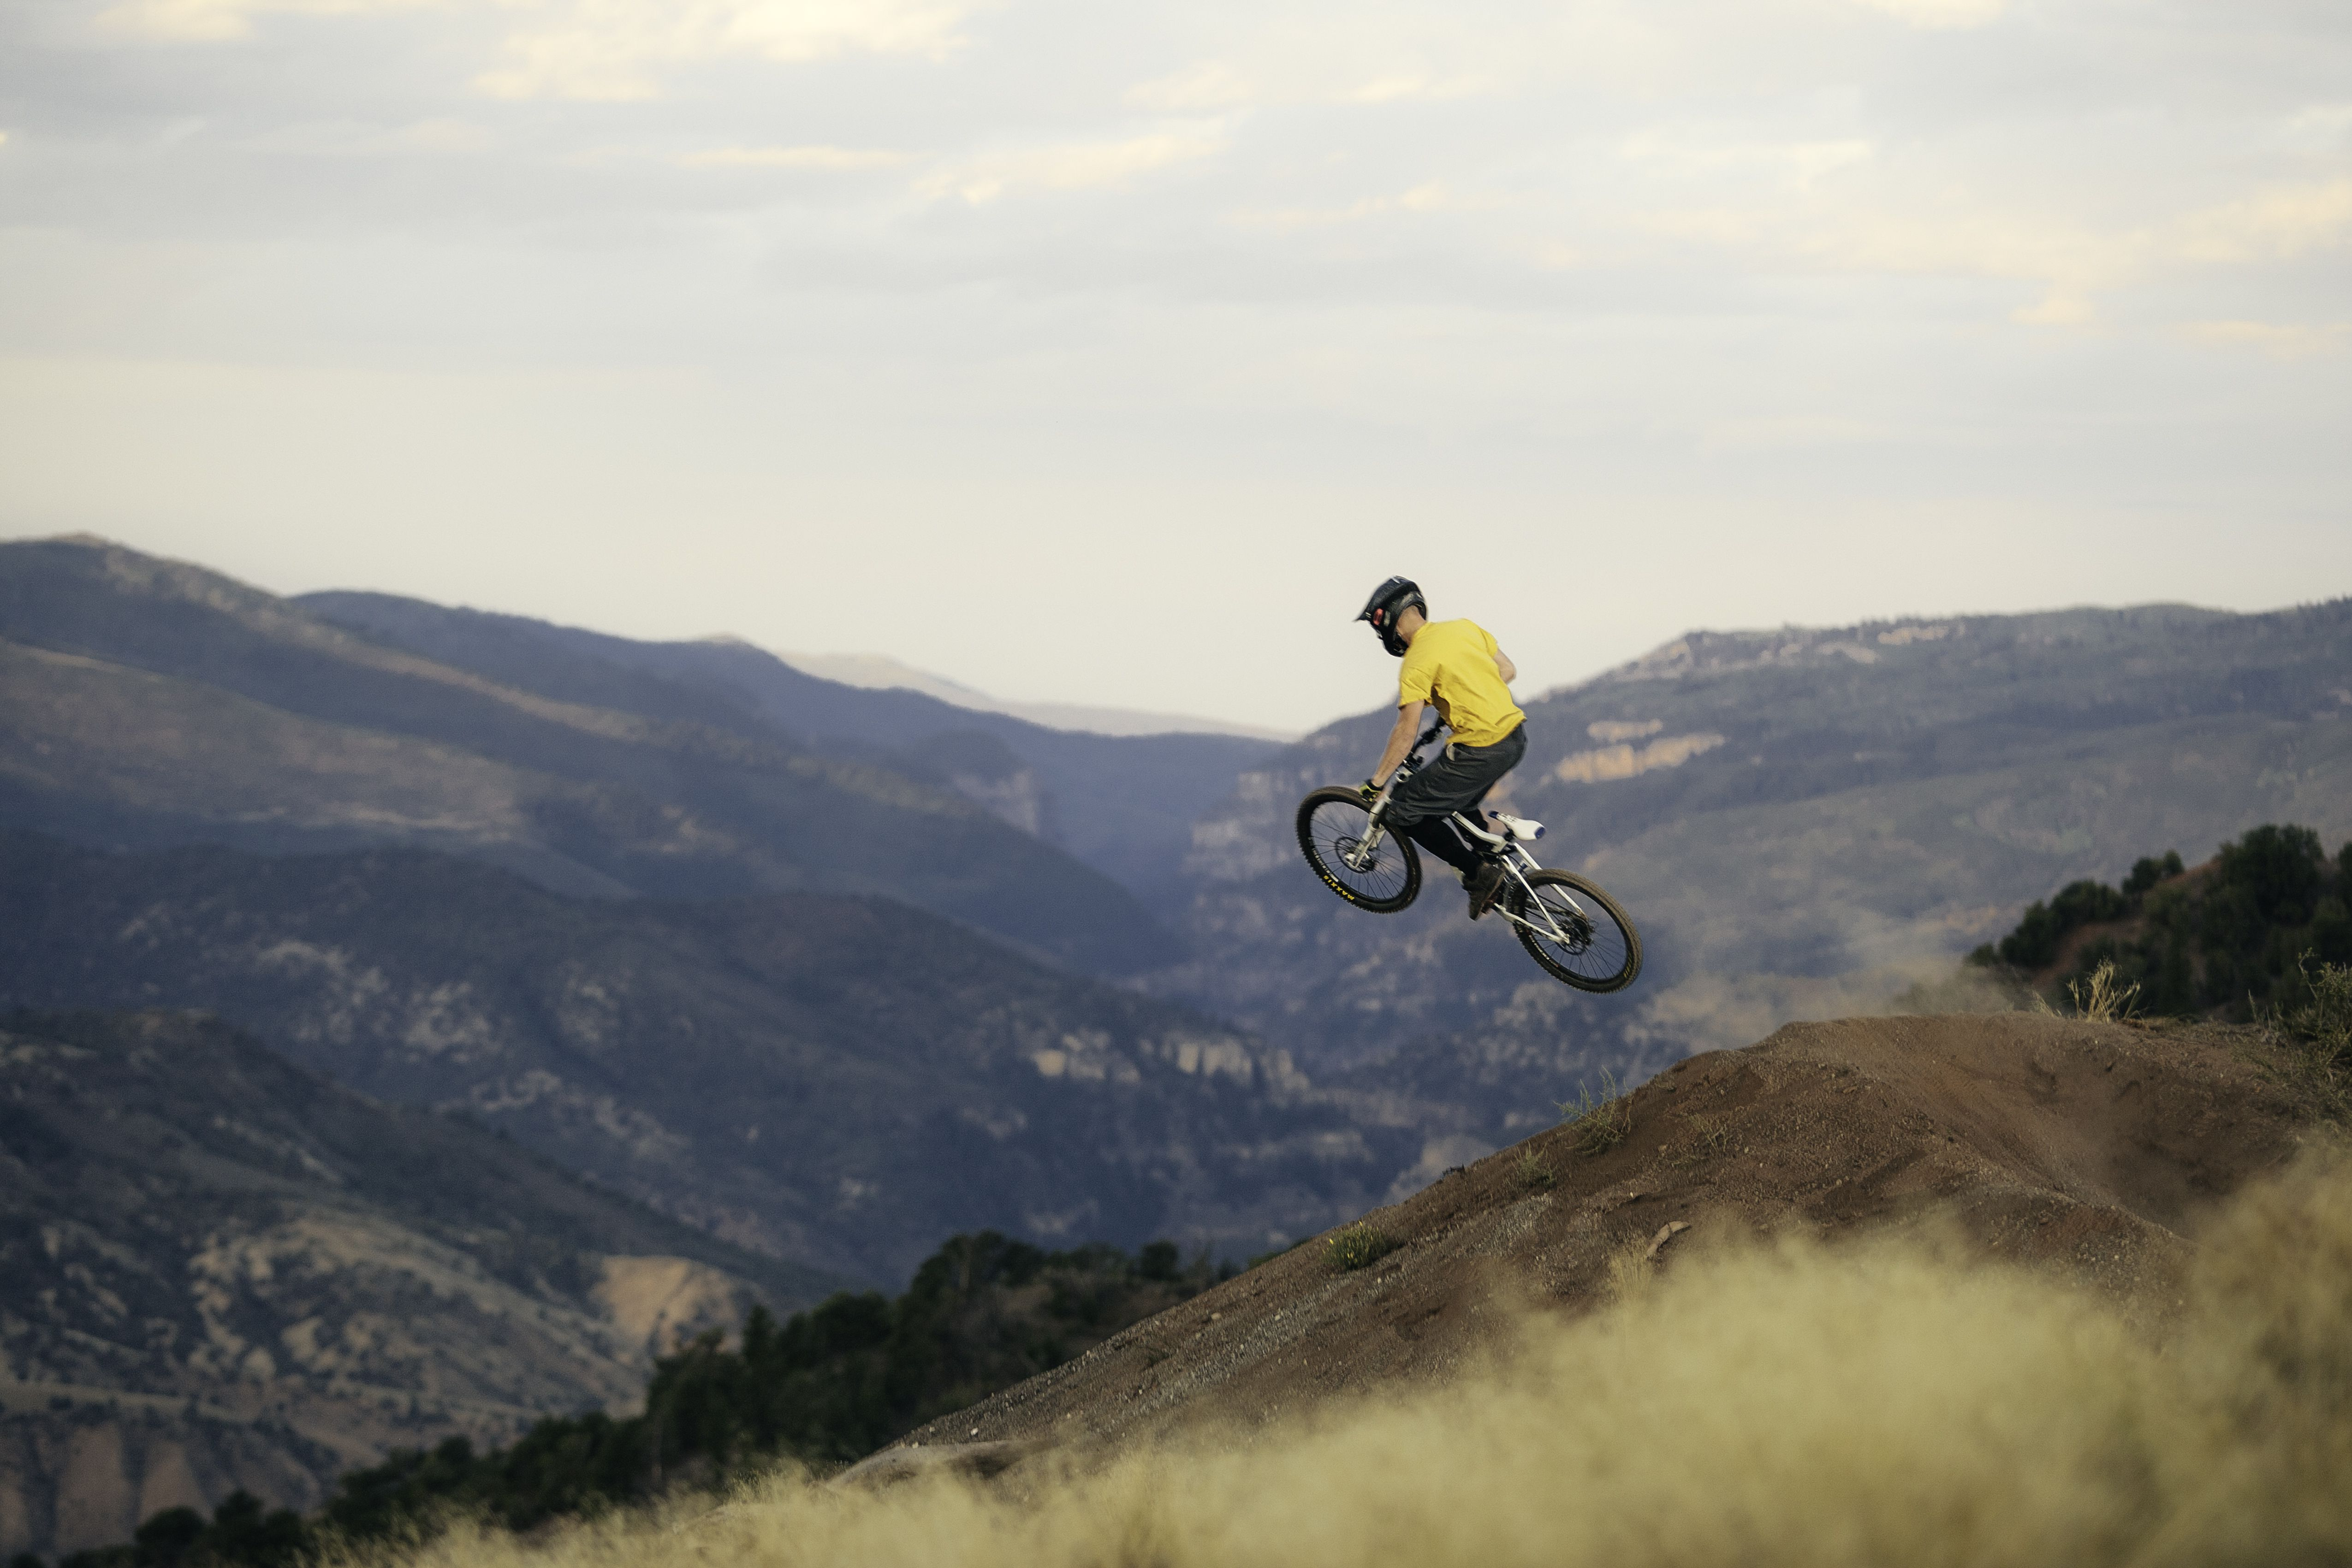 Guy with a mountain bike, jumping off of a jump.